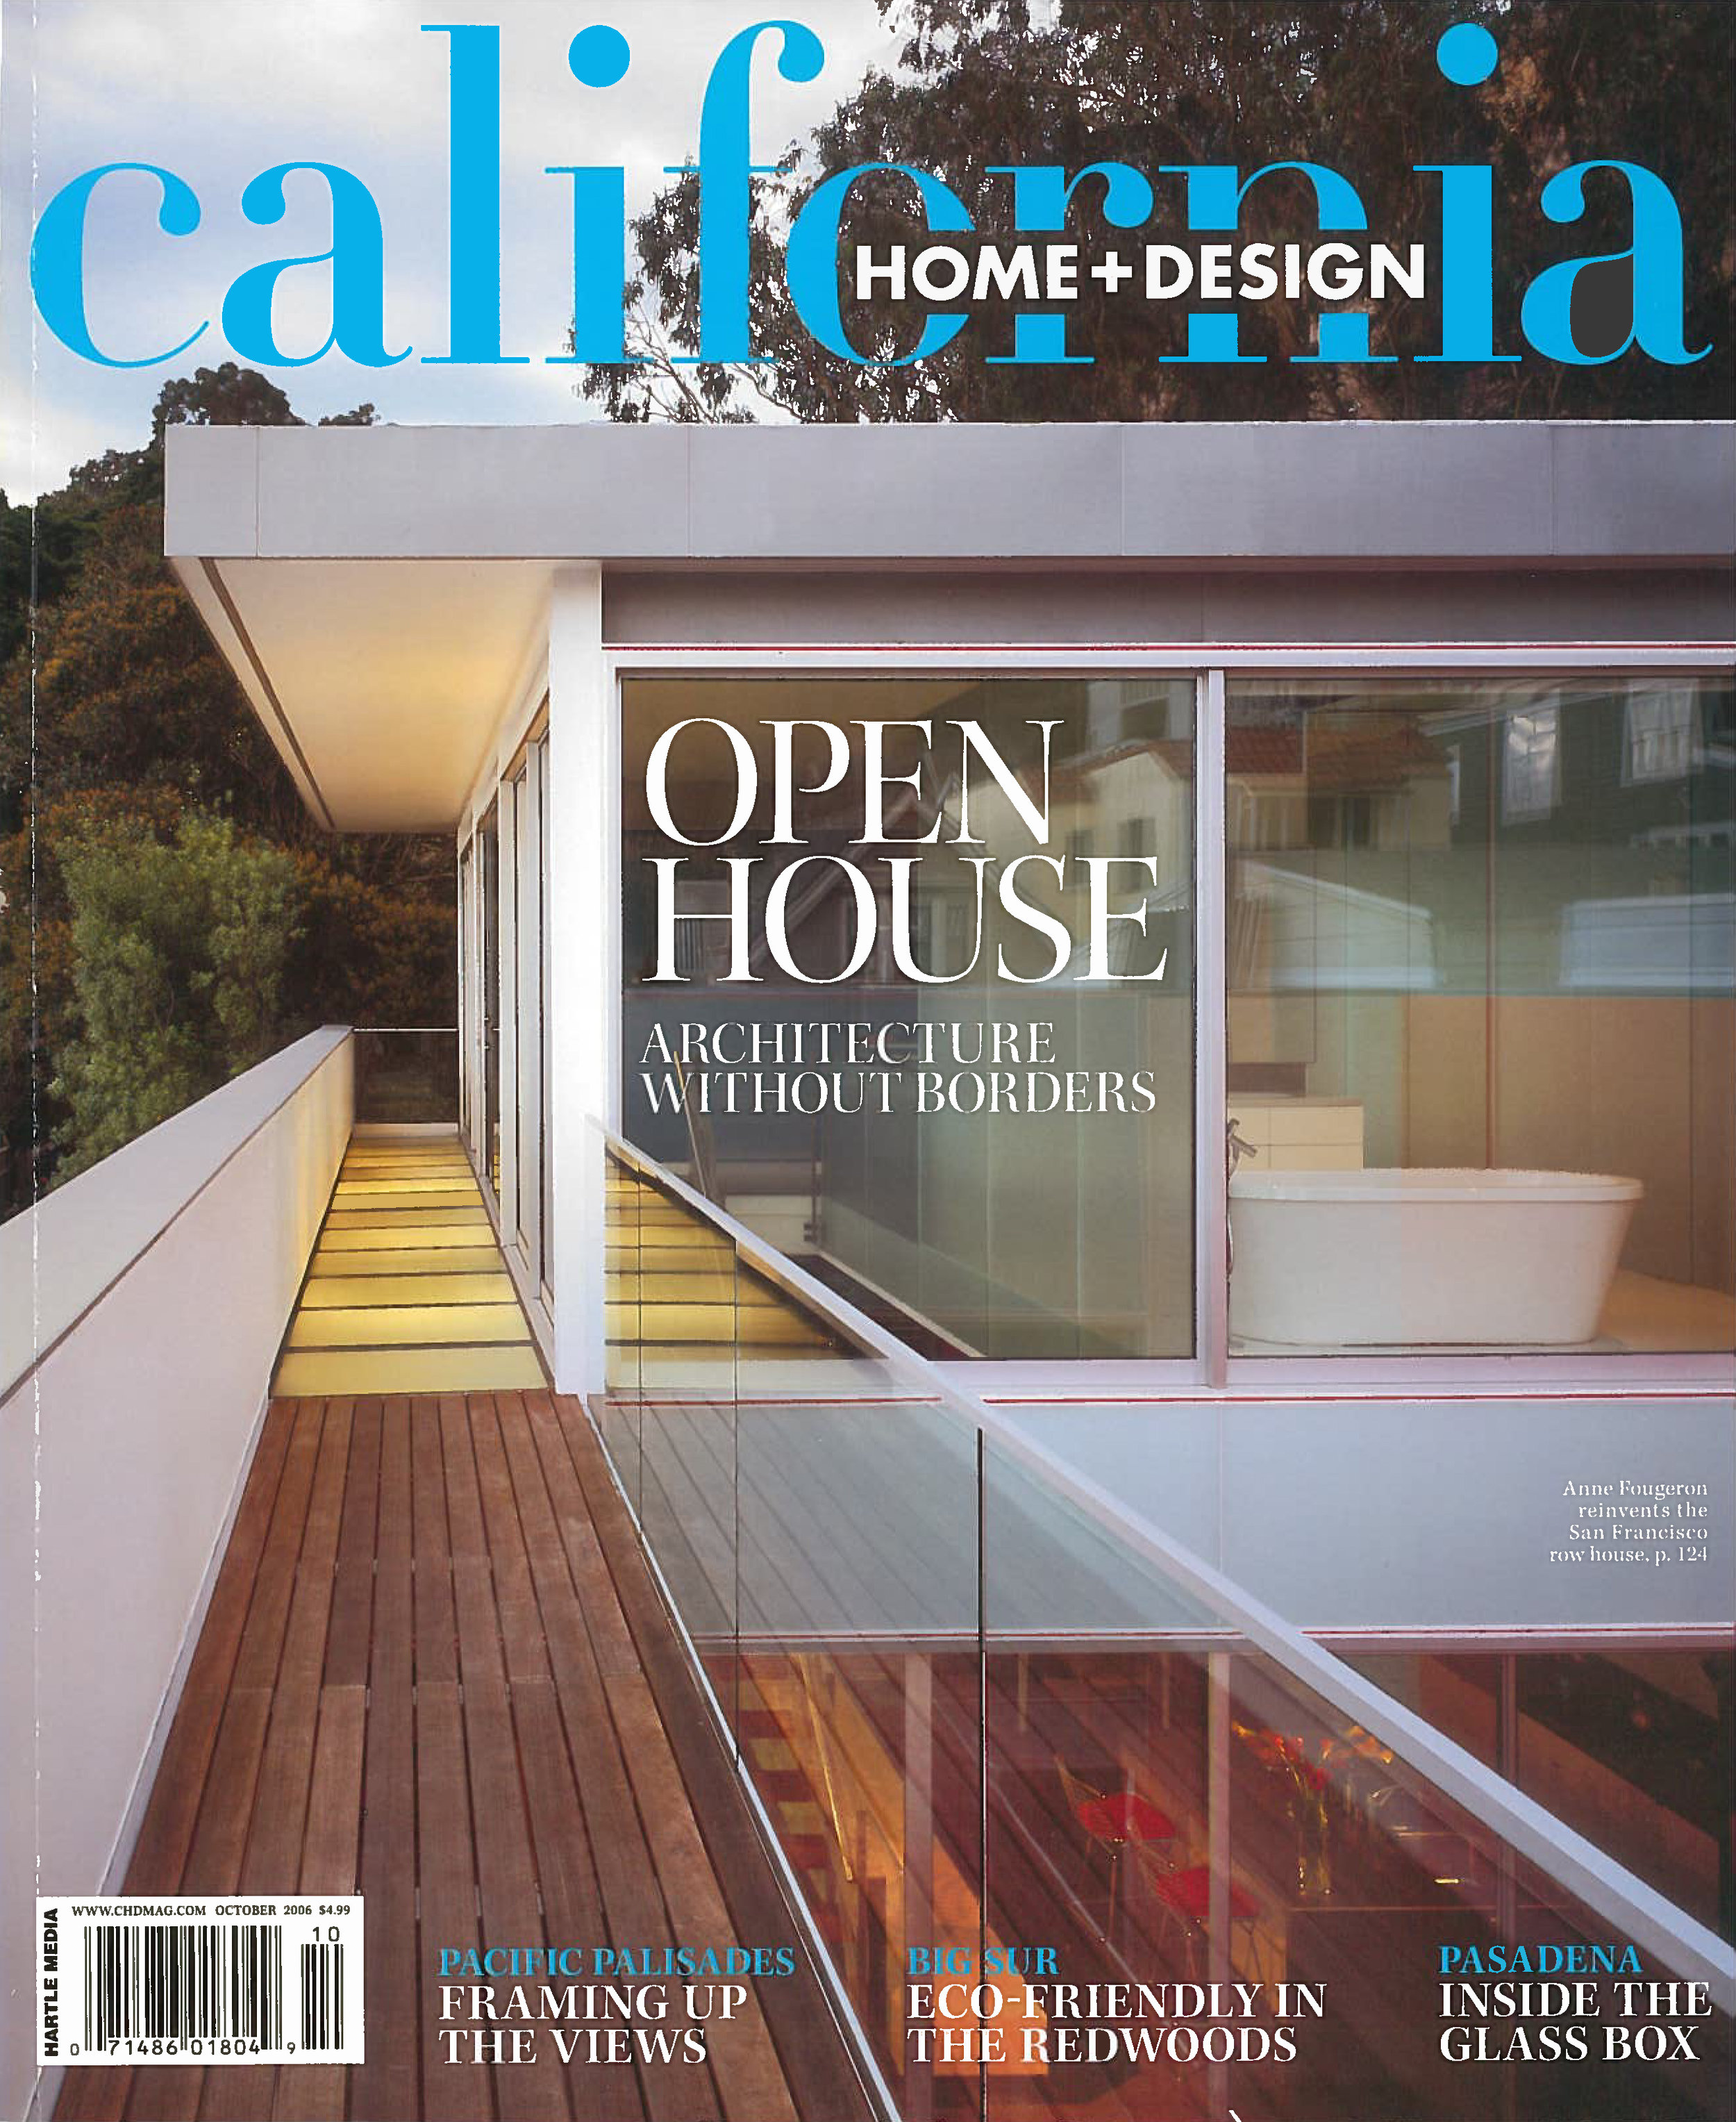 A Moment of Clarity - For a Pasadena architect renovating his own home was the perfect excuse to delve into the basics of modernism.Written by Jean VictorPhotography by Grey CrawfordCalifornia Home + Designchdmag.com | October 2006